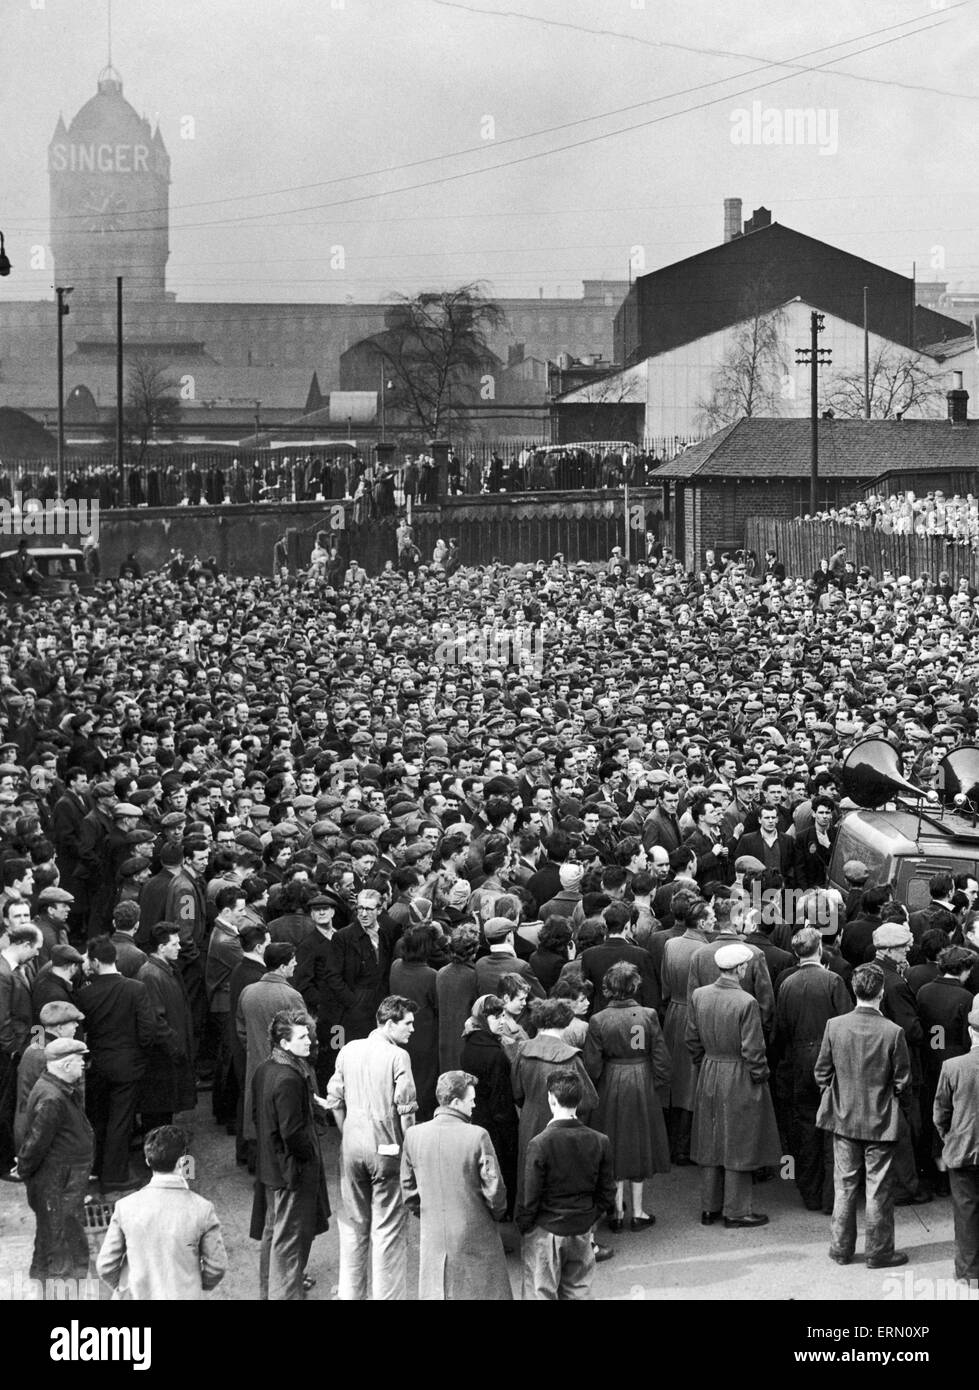 Mass meeting of workers at the Singer Manufacturing Company